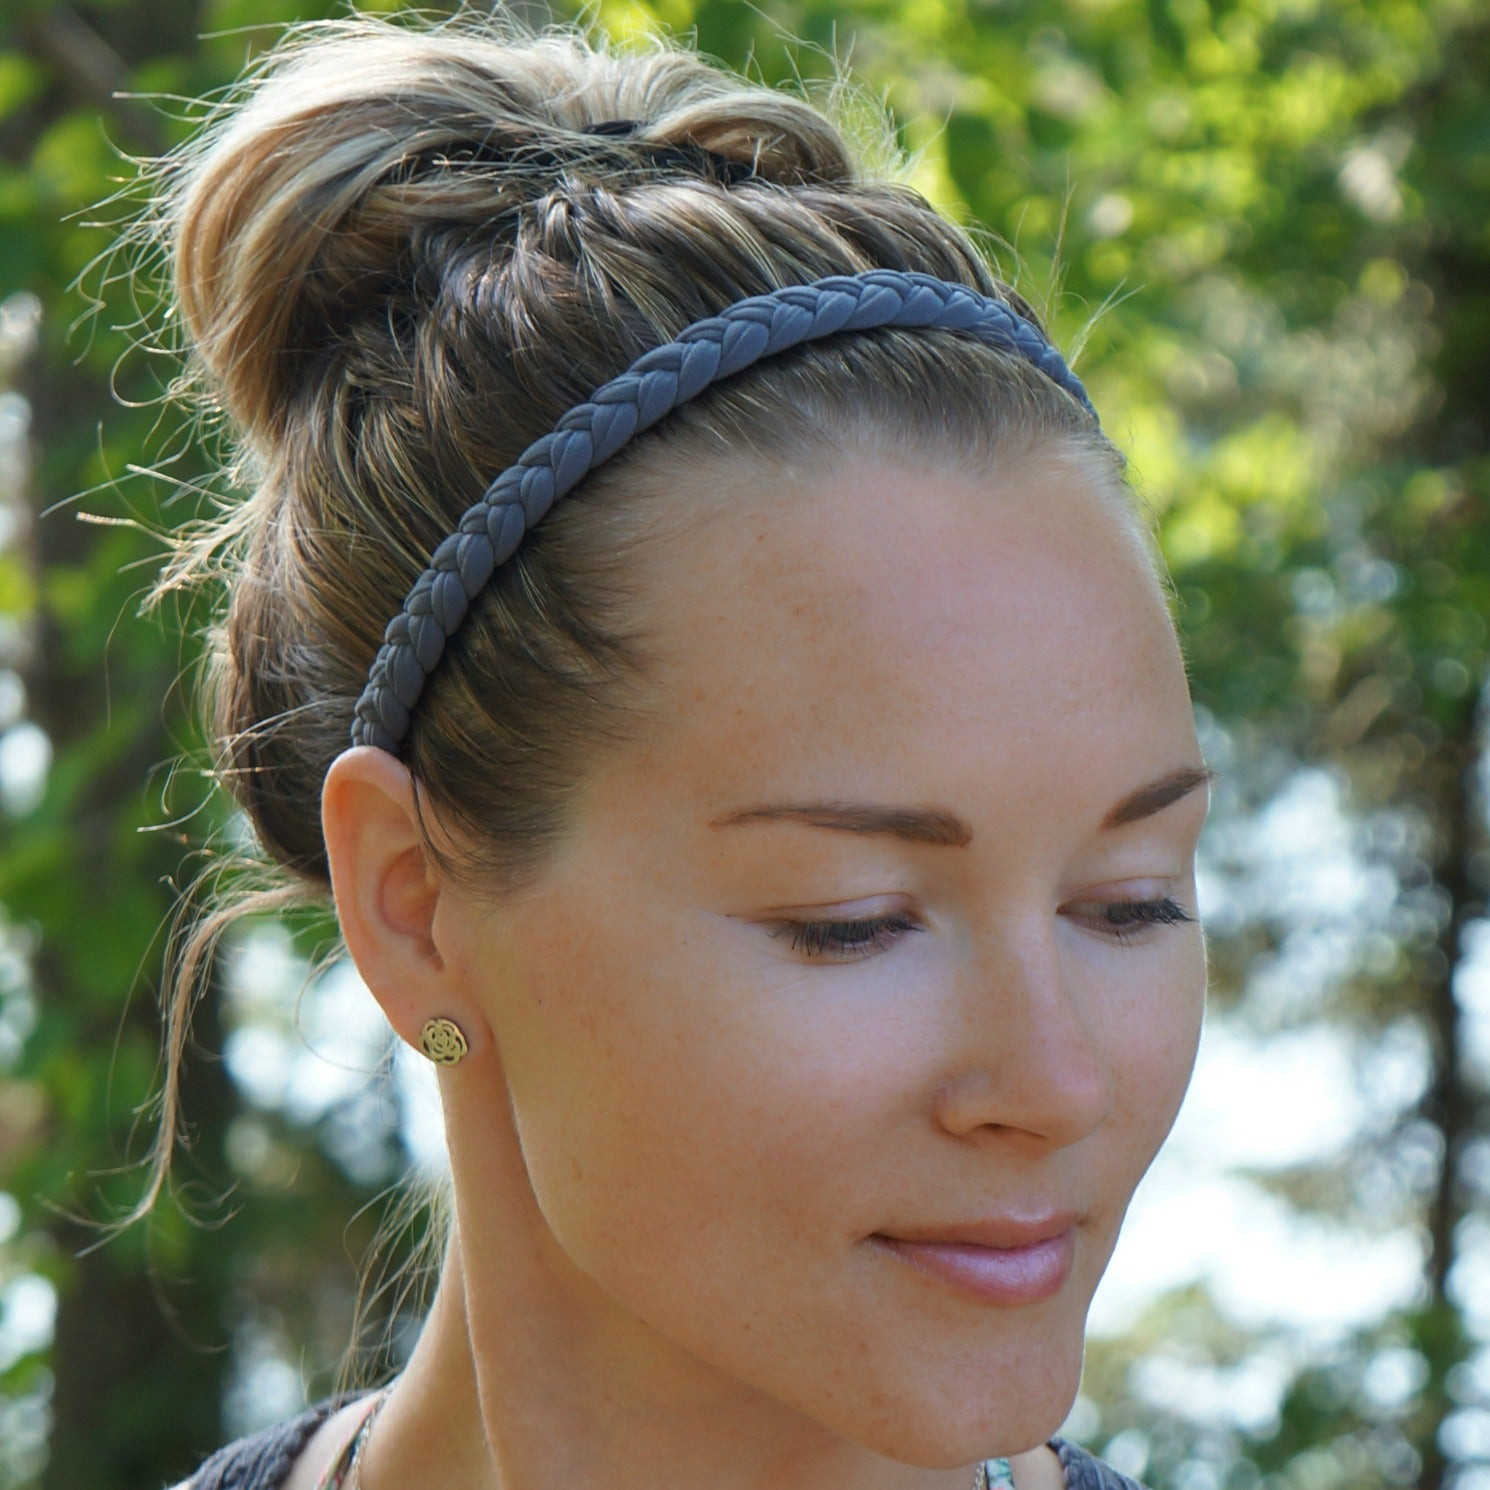 Braided Workout Headband in Slate Grey